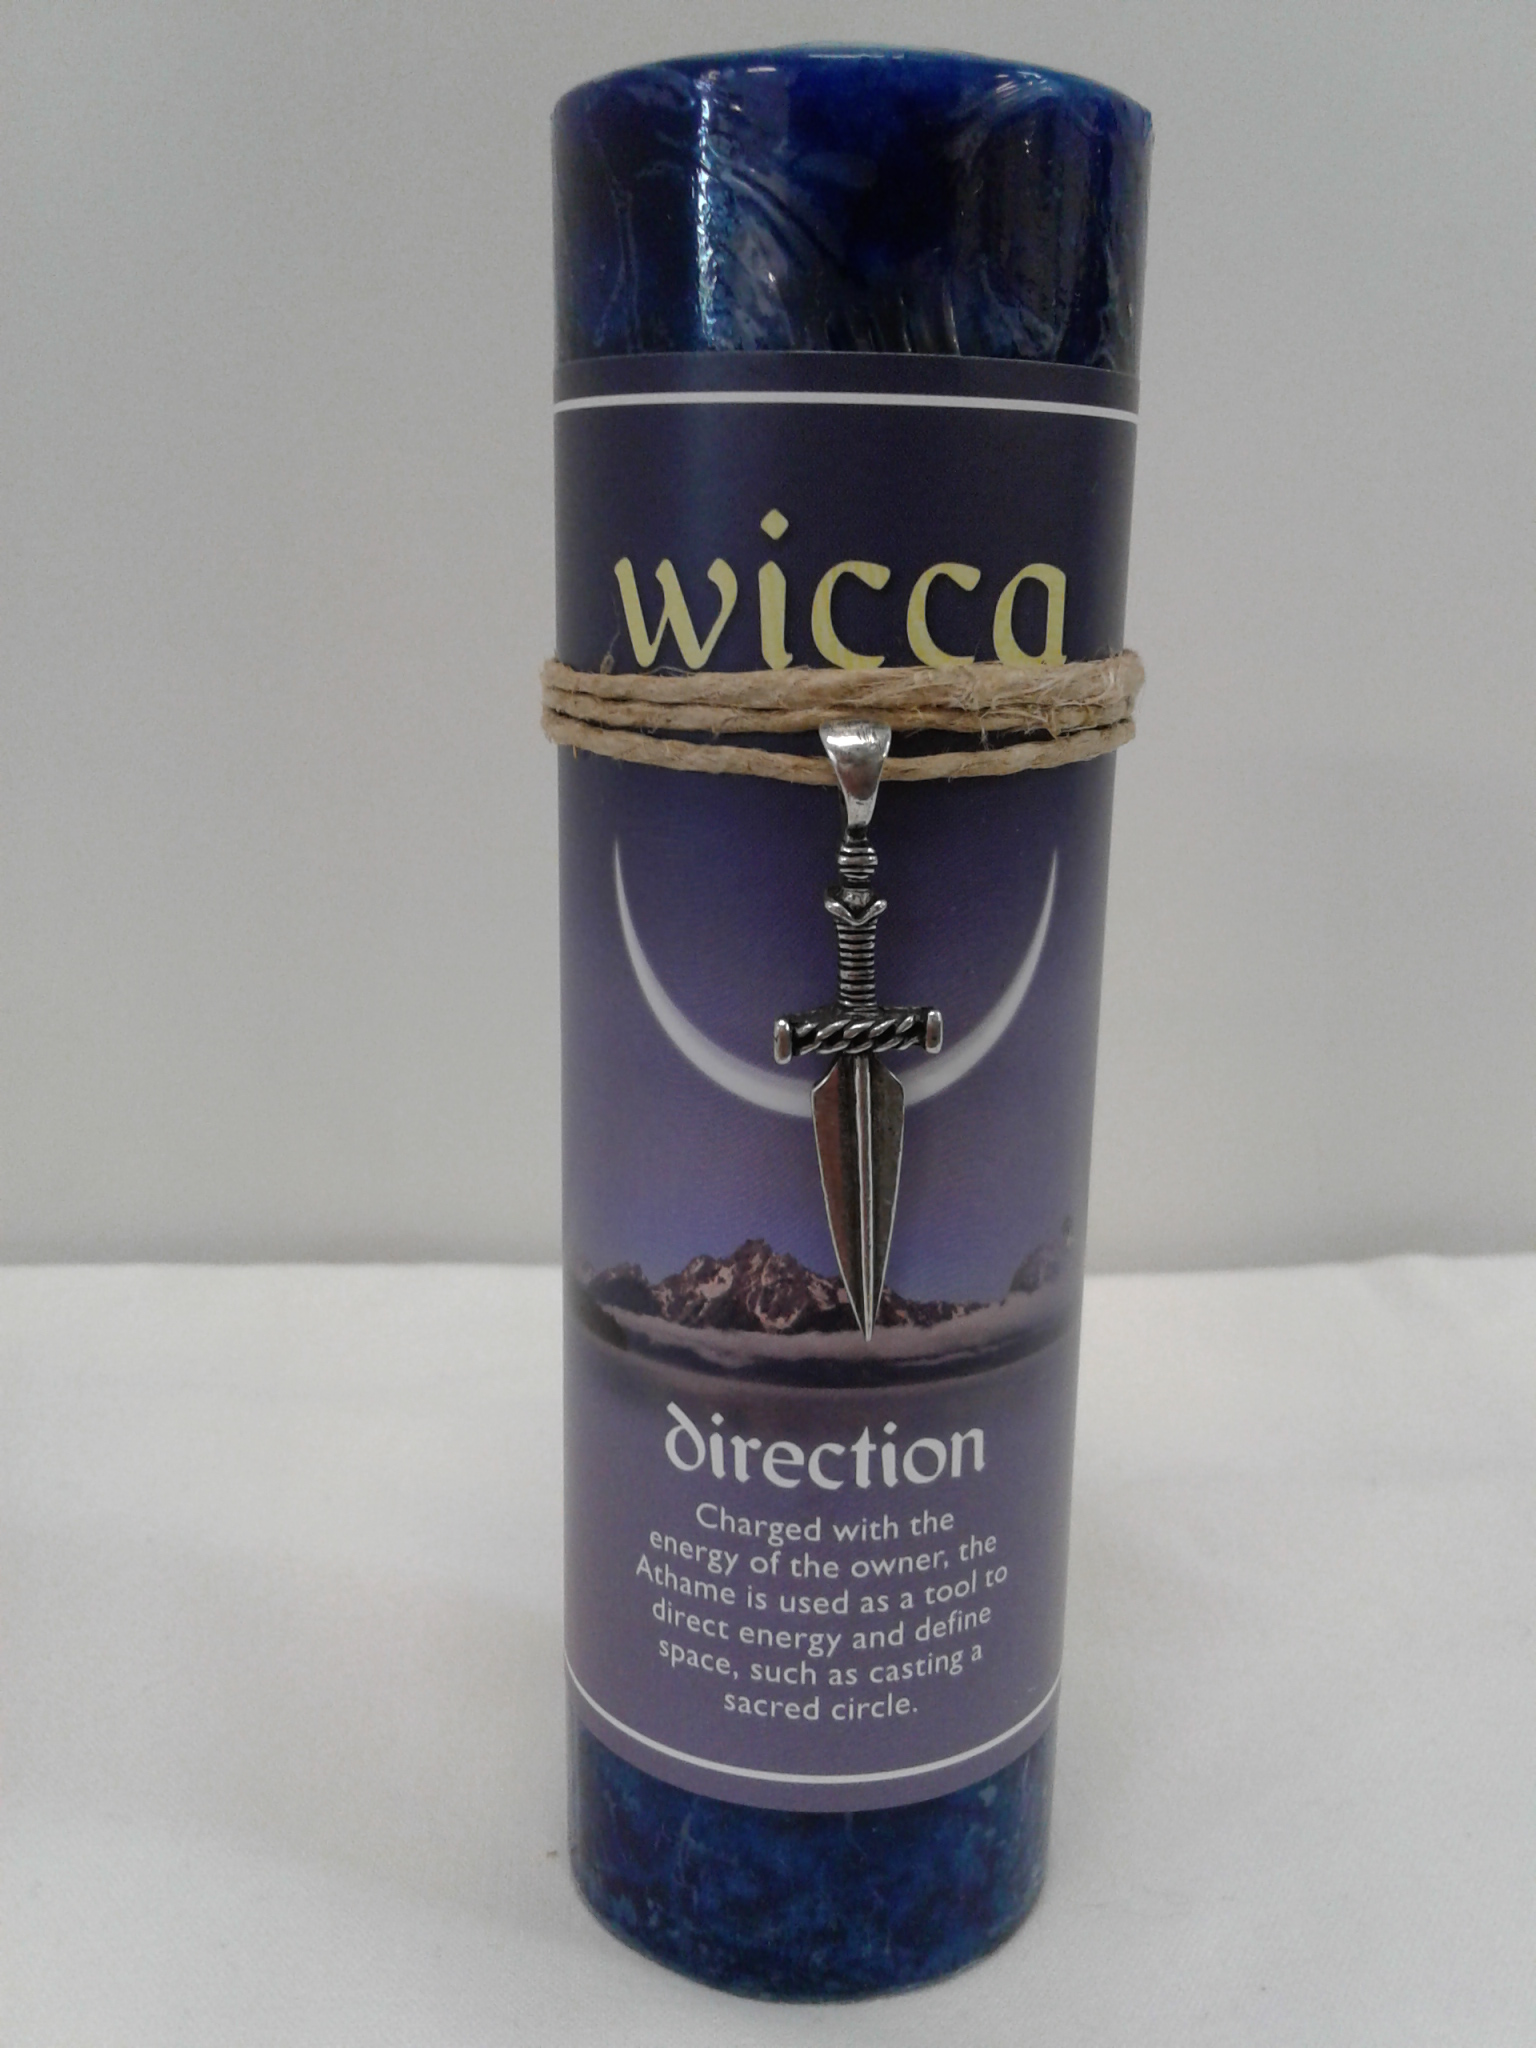 wicca direction